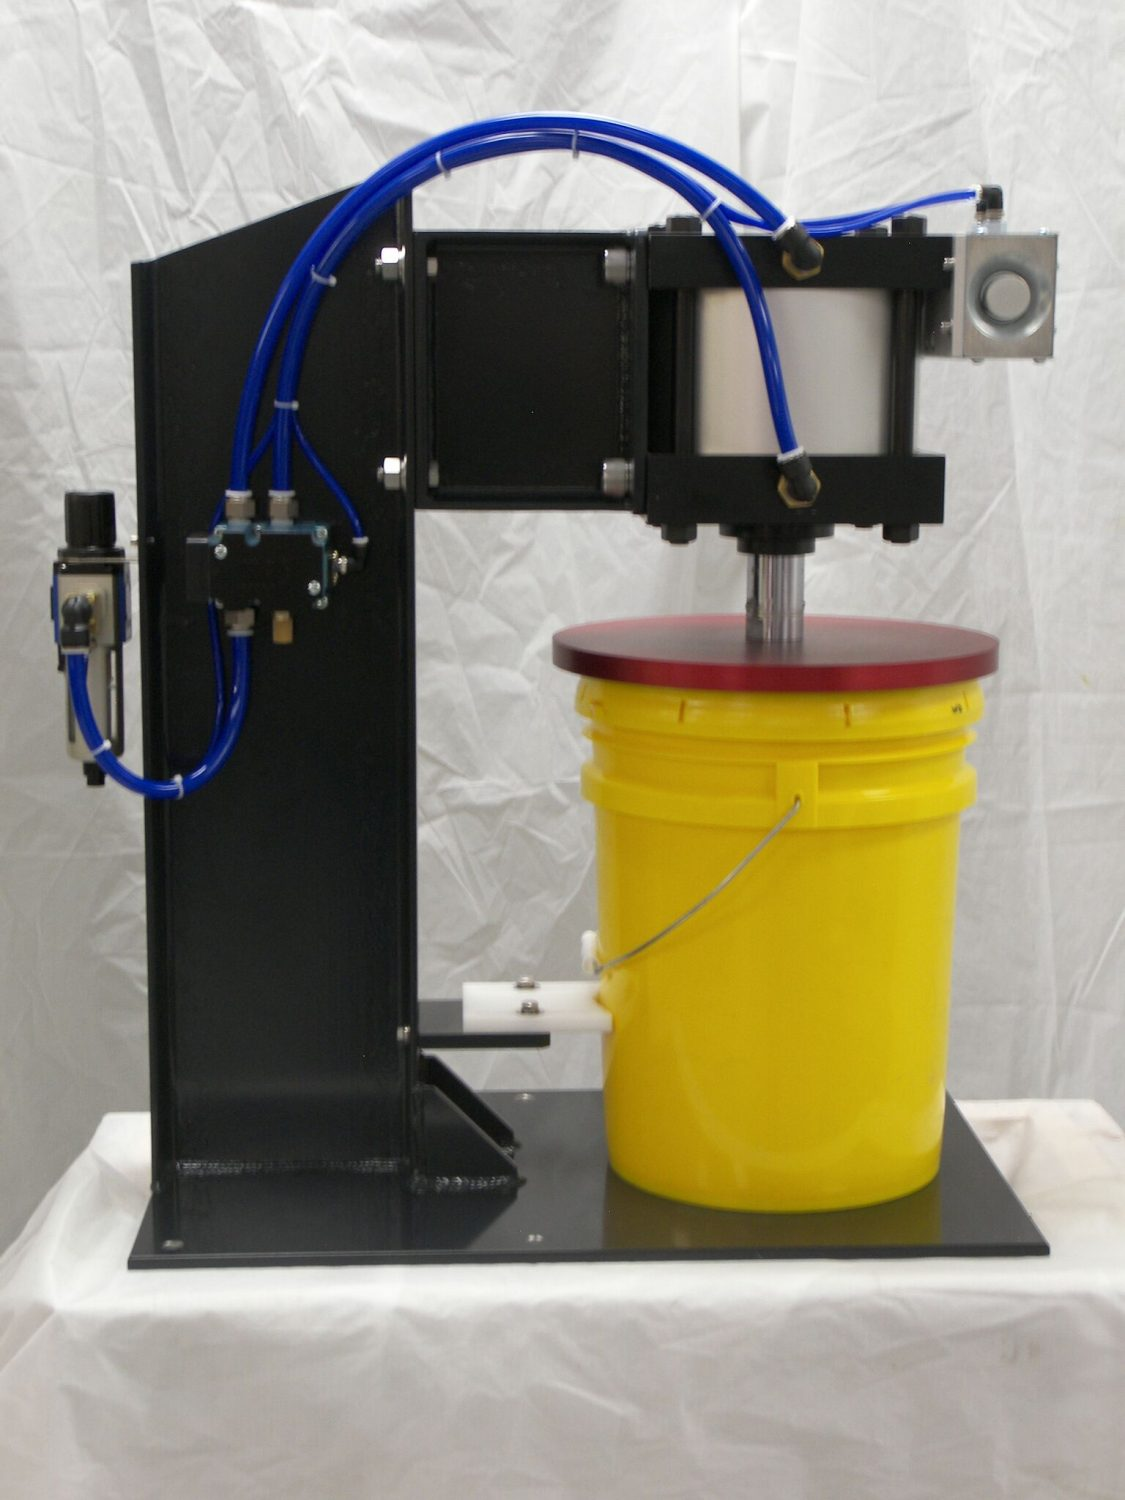 5 Gallon Bucket Table Top Lid Press Xpect Solutions